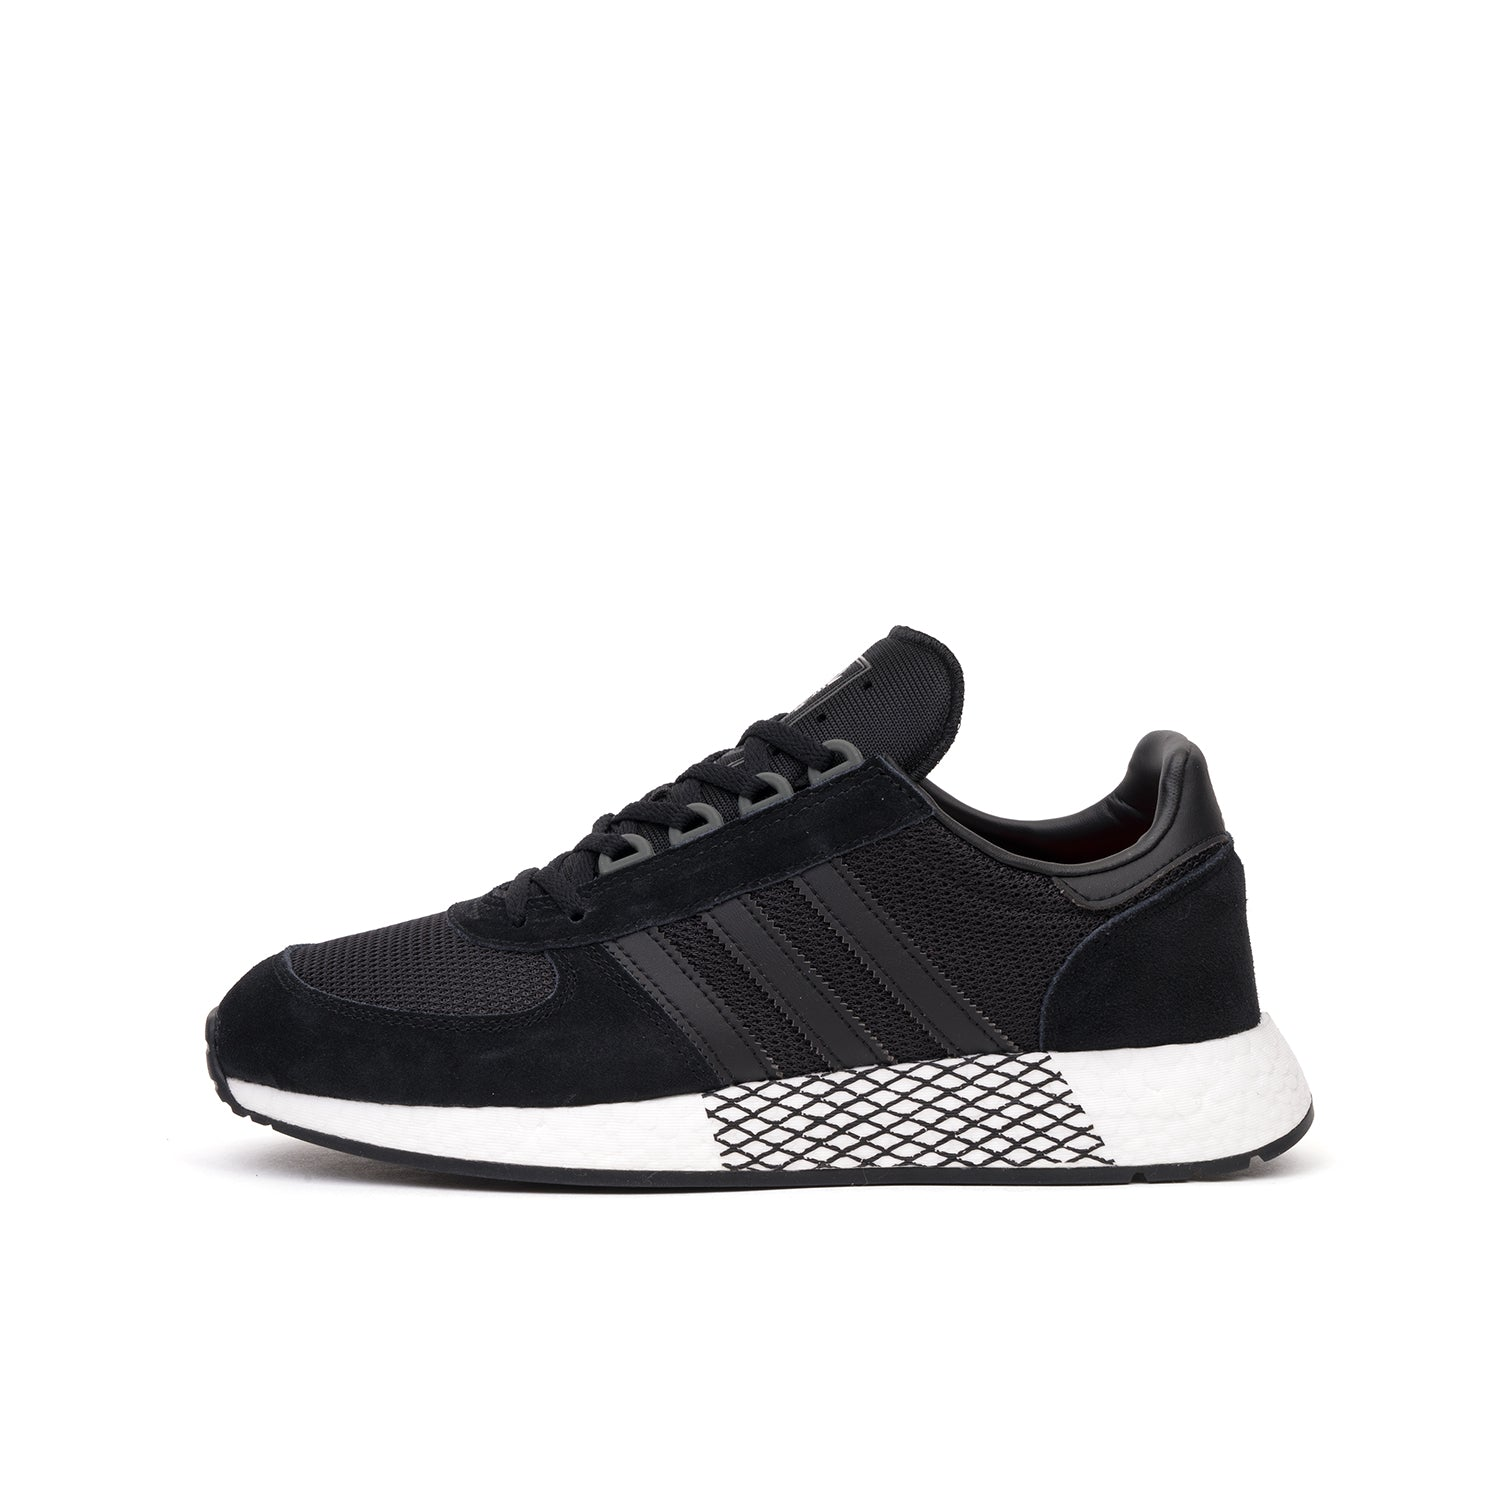 adidas Originals Marathon x 5923 'NEVER MADE' Black